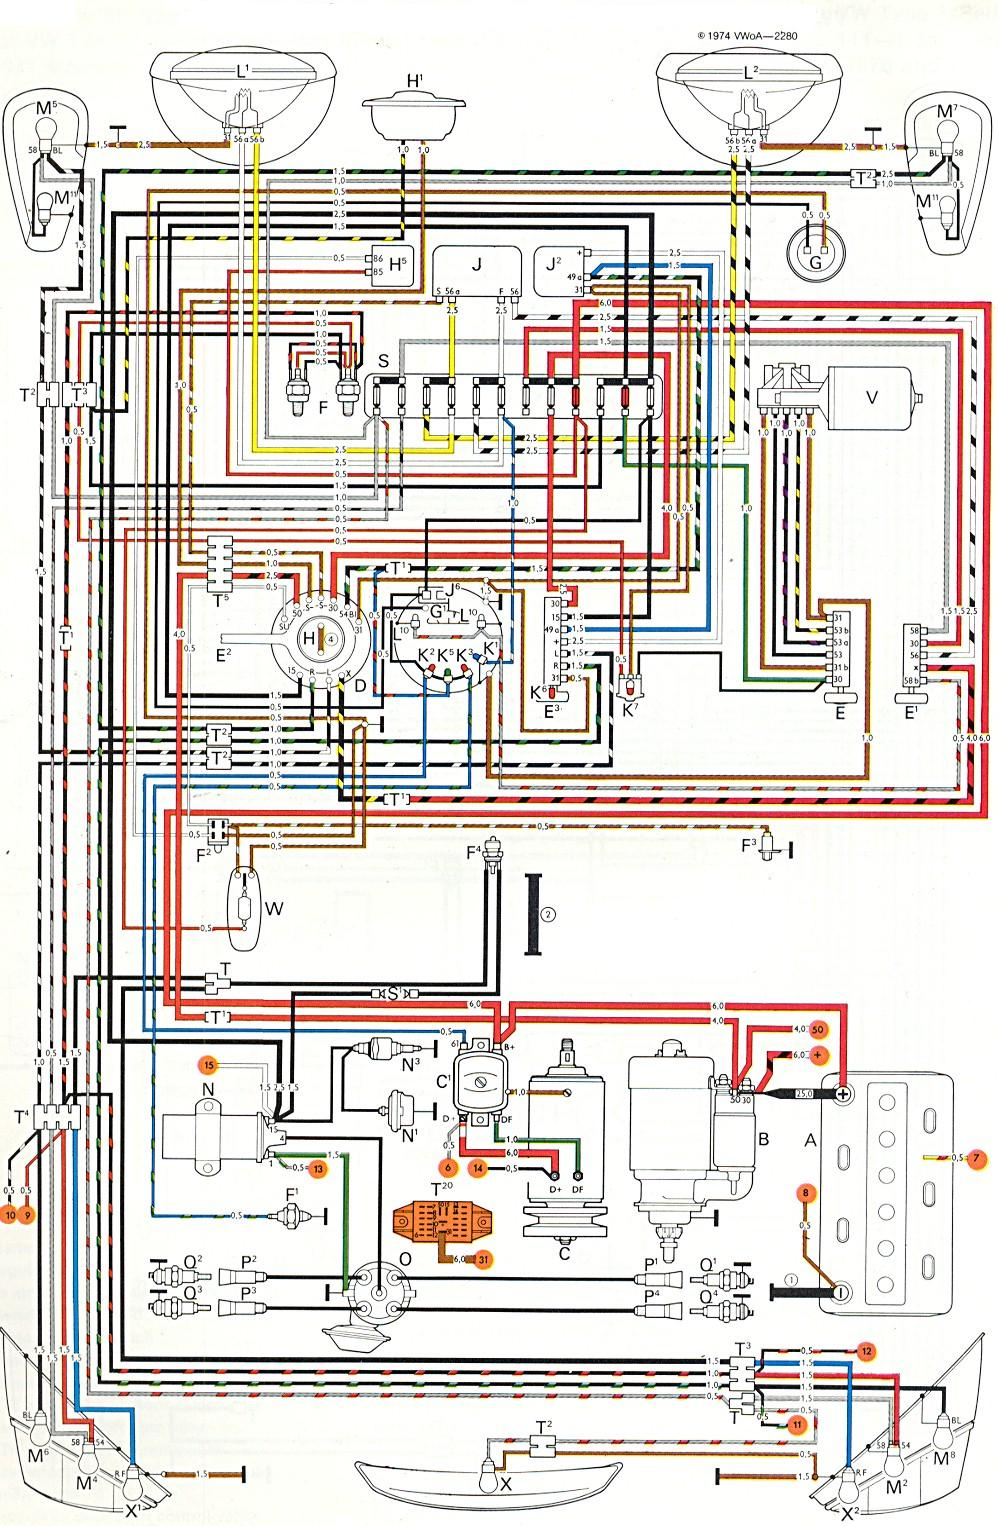 74 vw wiring diagram wiring diagram schemes 1973 vw beetle fuse box diagram  new beetle wiring